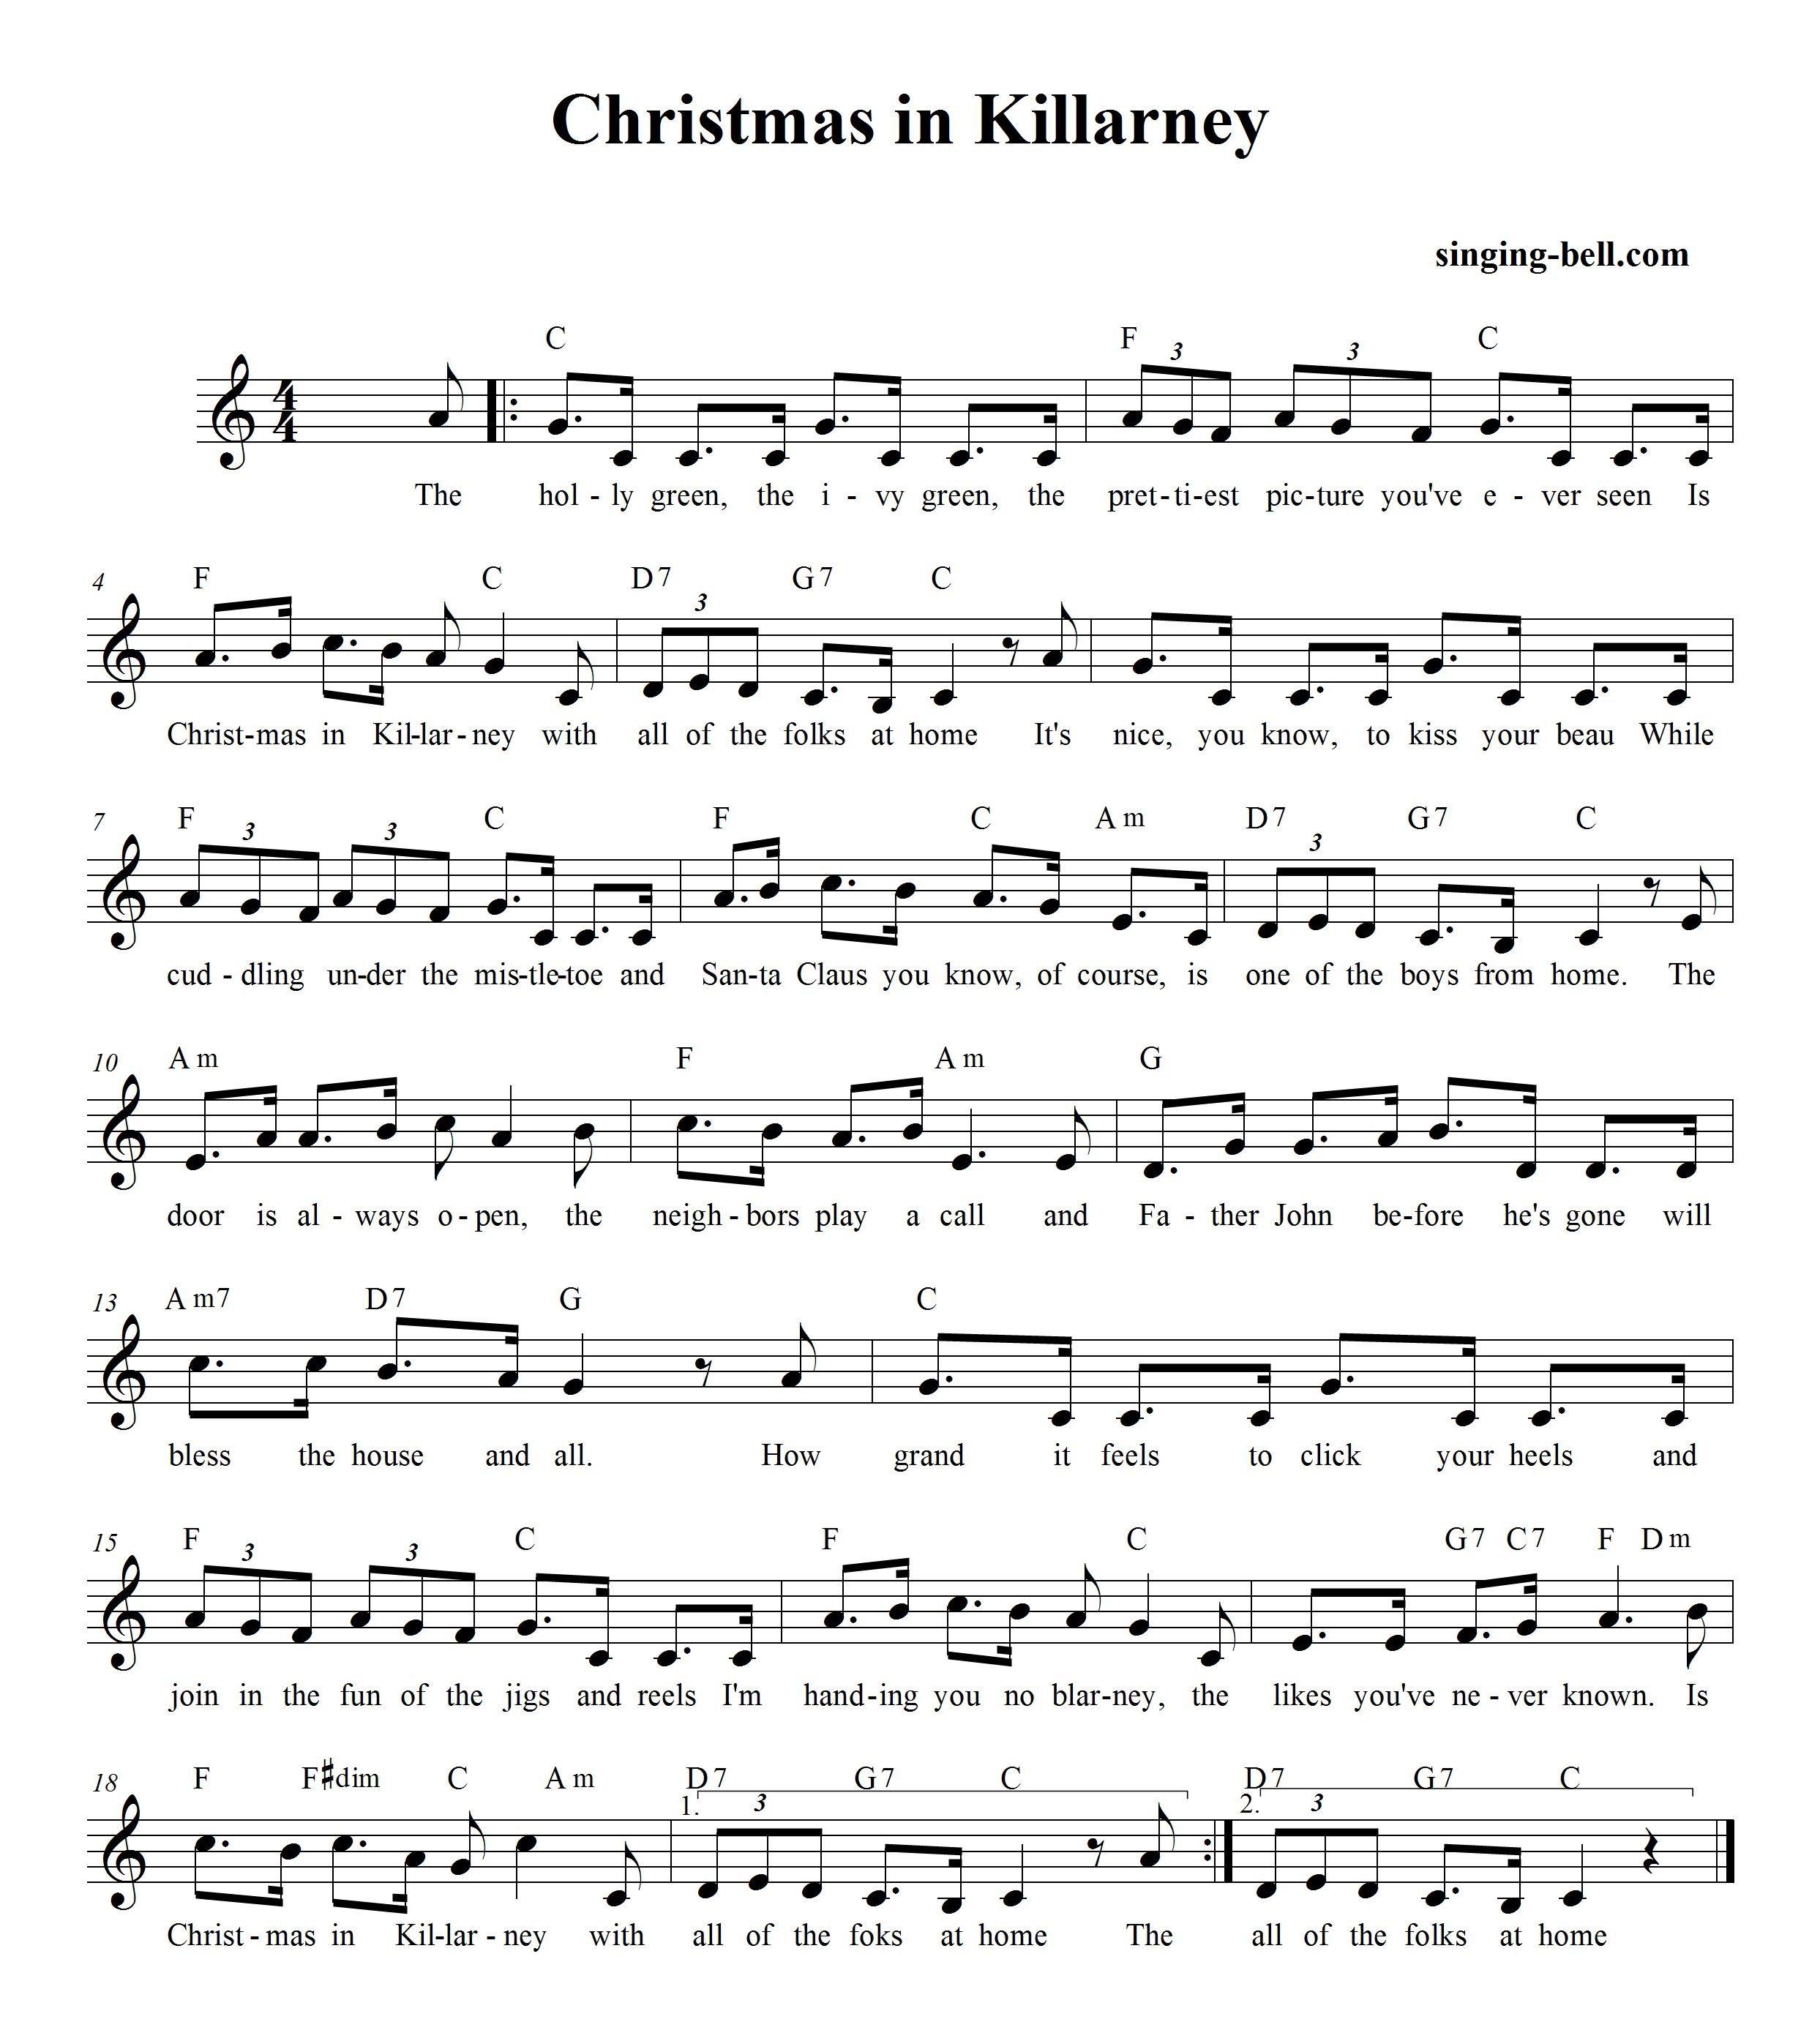 Christmas in Killarney | Free Christmas Carols